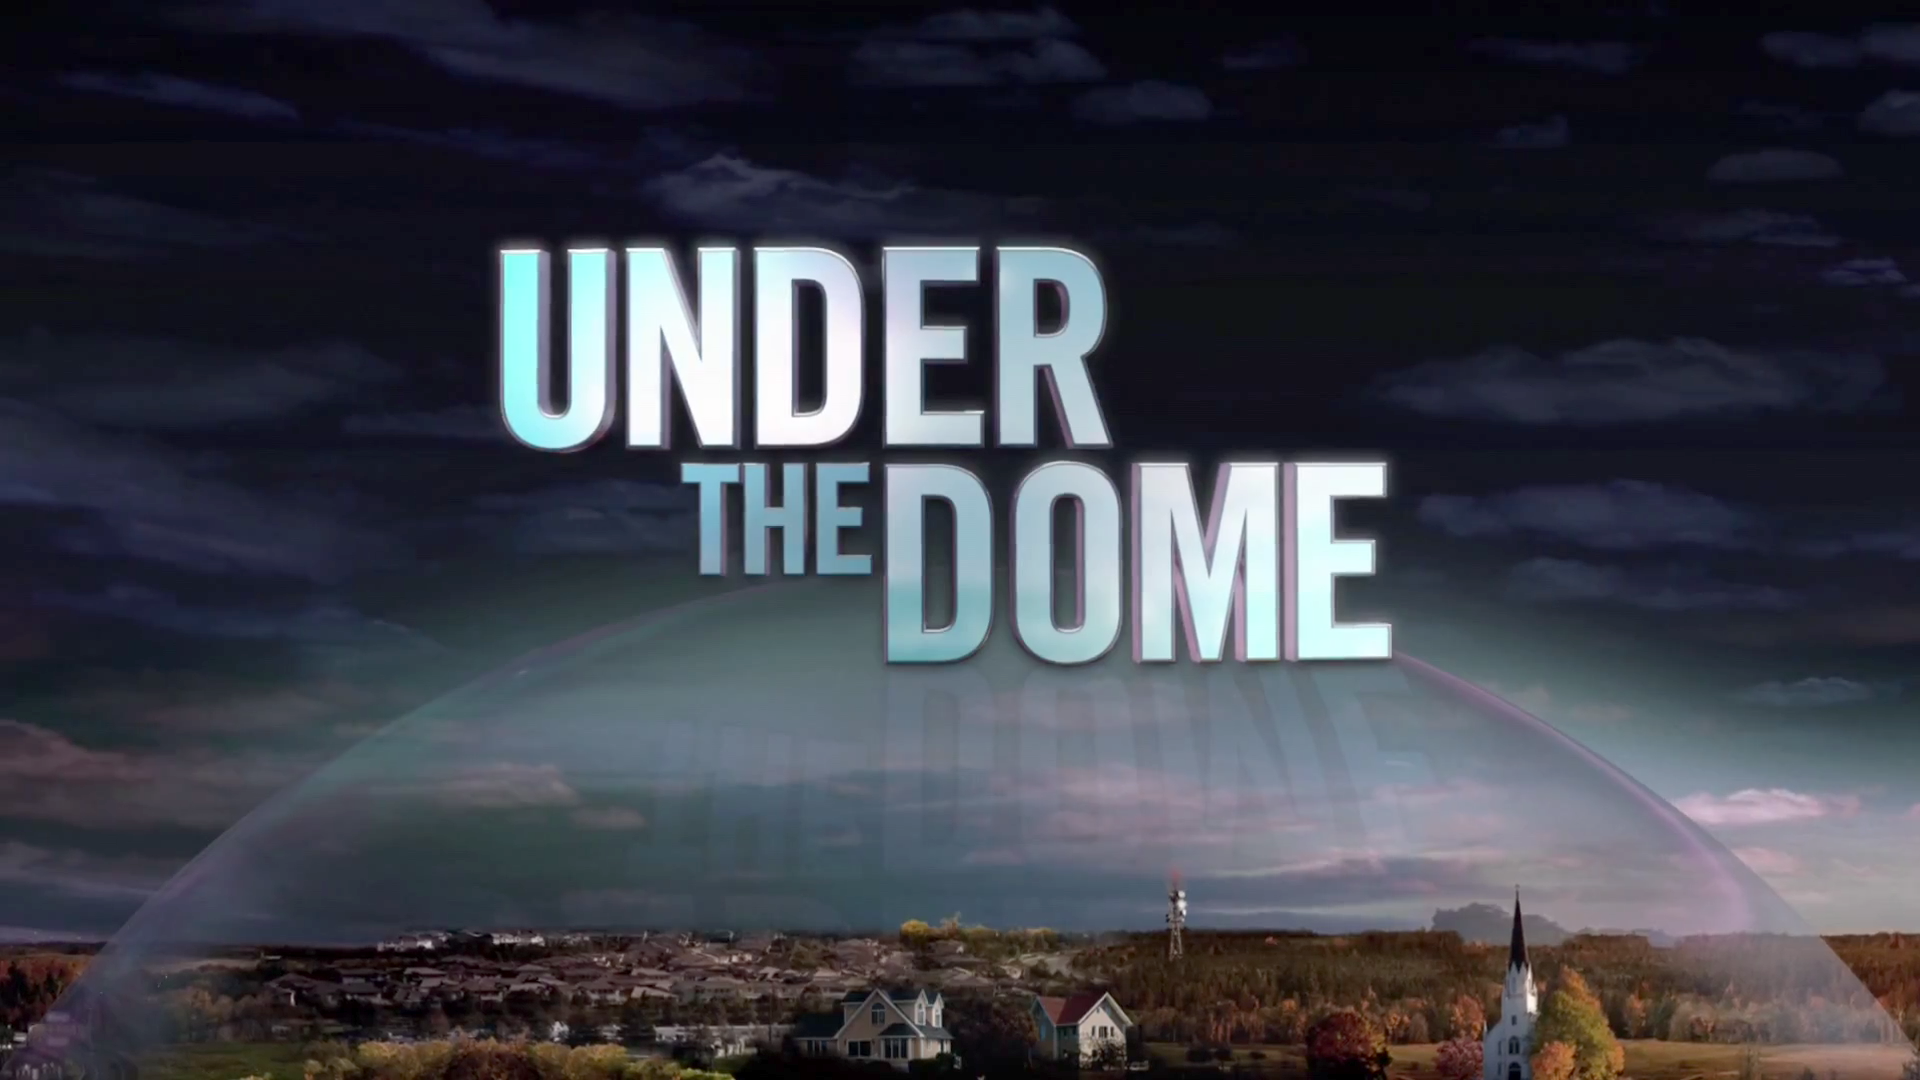 High Resolution Wallpaper | Under The Dome 1920x1080 px